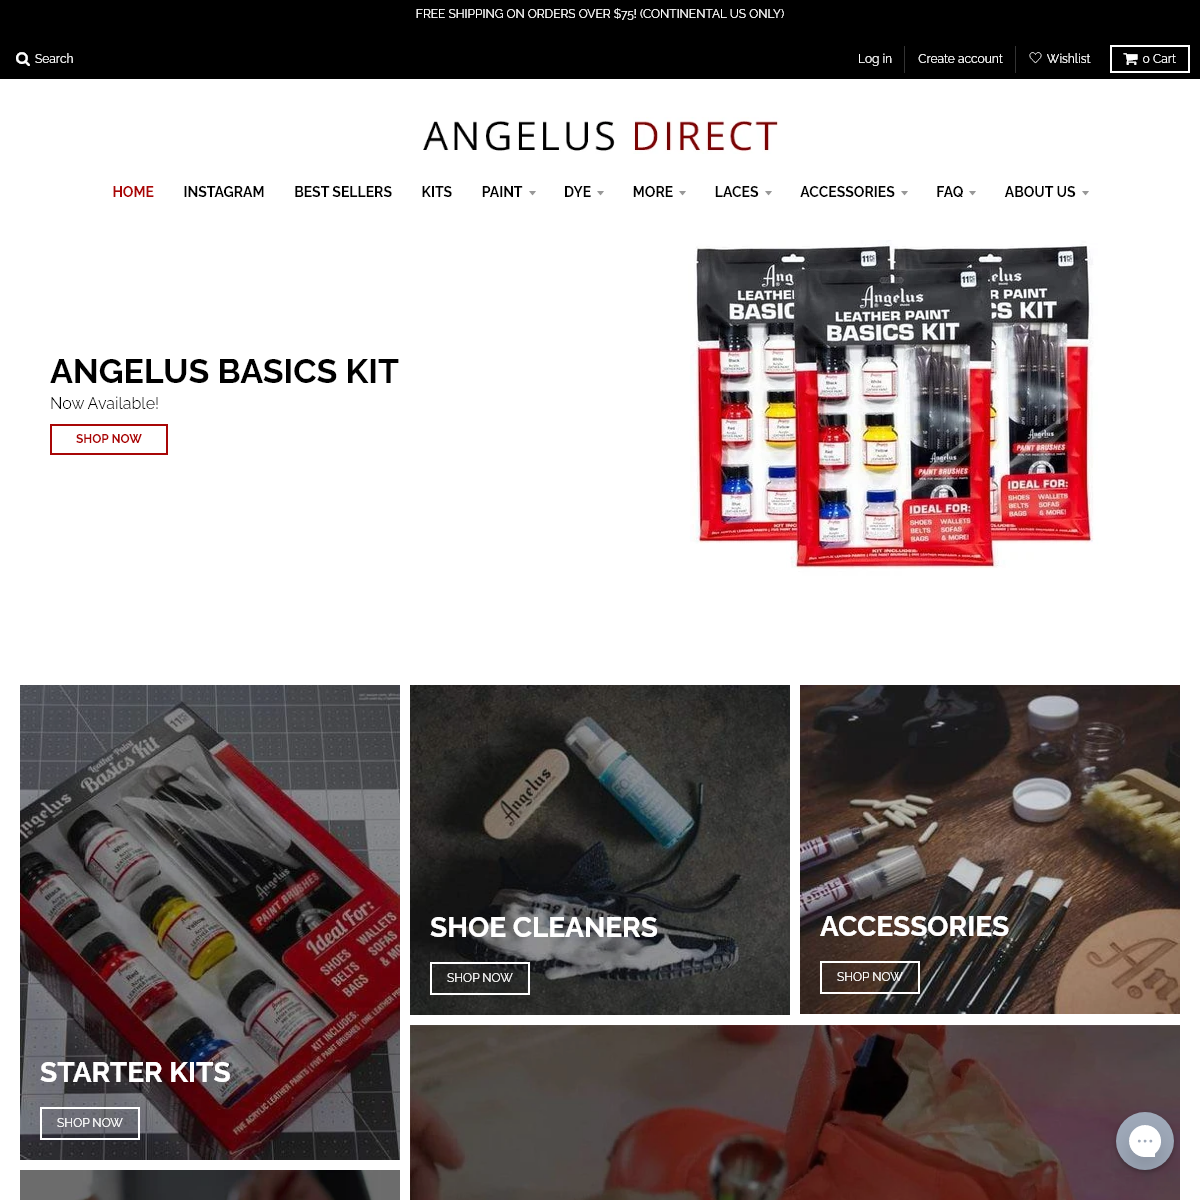 Angelus Direct - Angelus Paint - Shoe Cleaner - Shoe Care Products